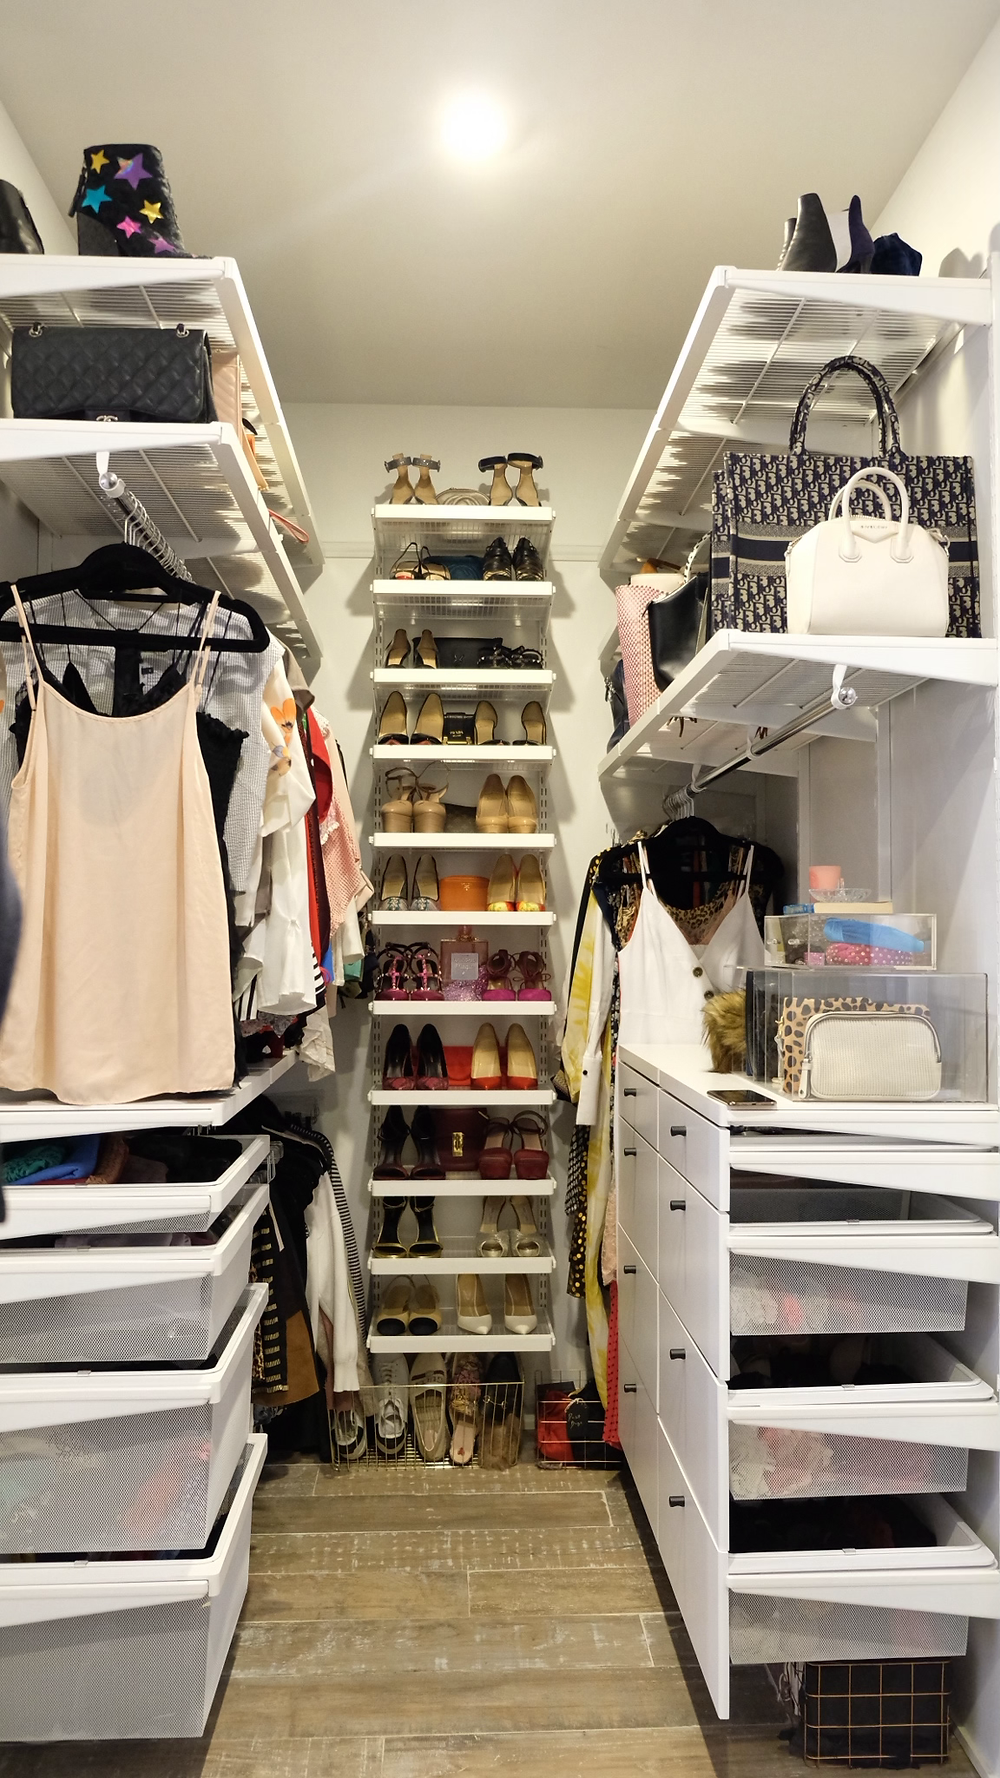 Vertical shelves allow for more storage in closets